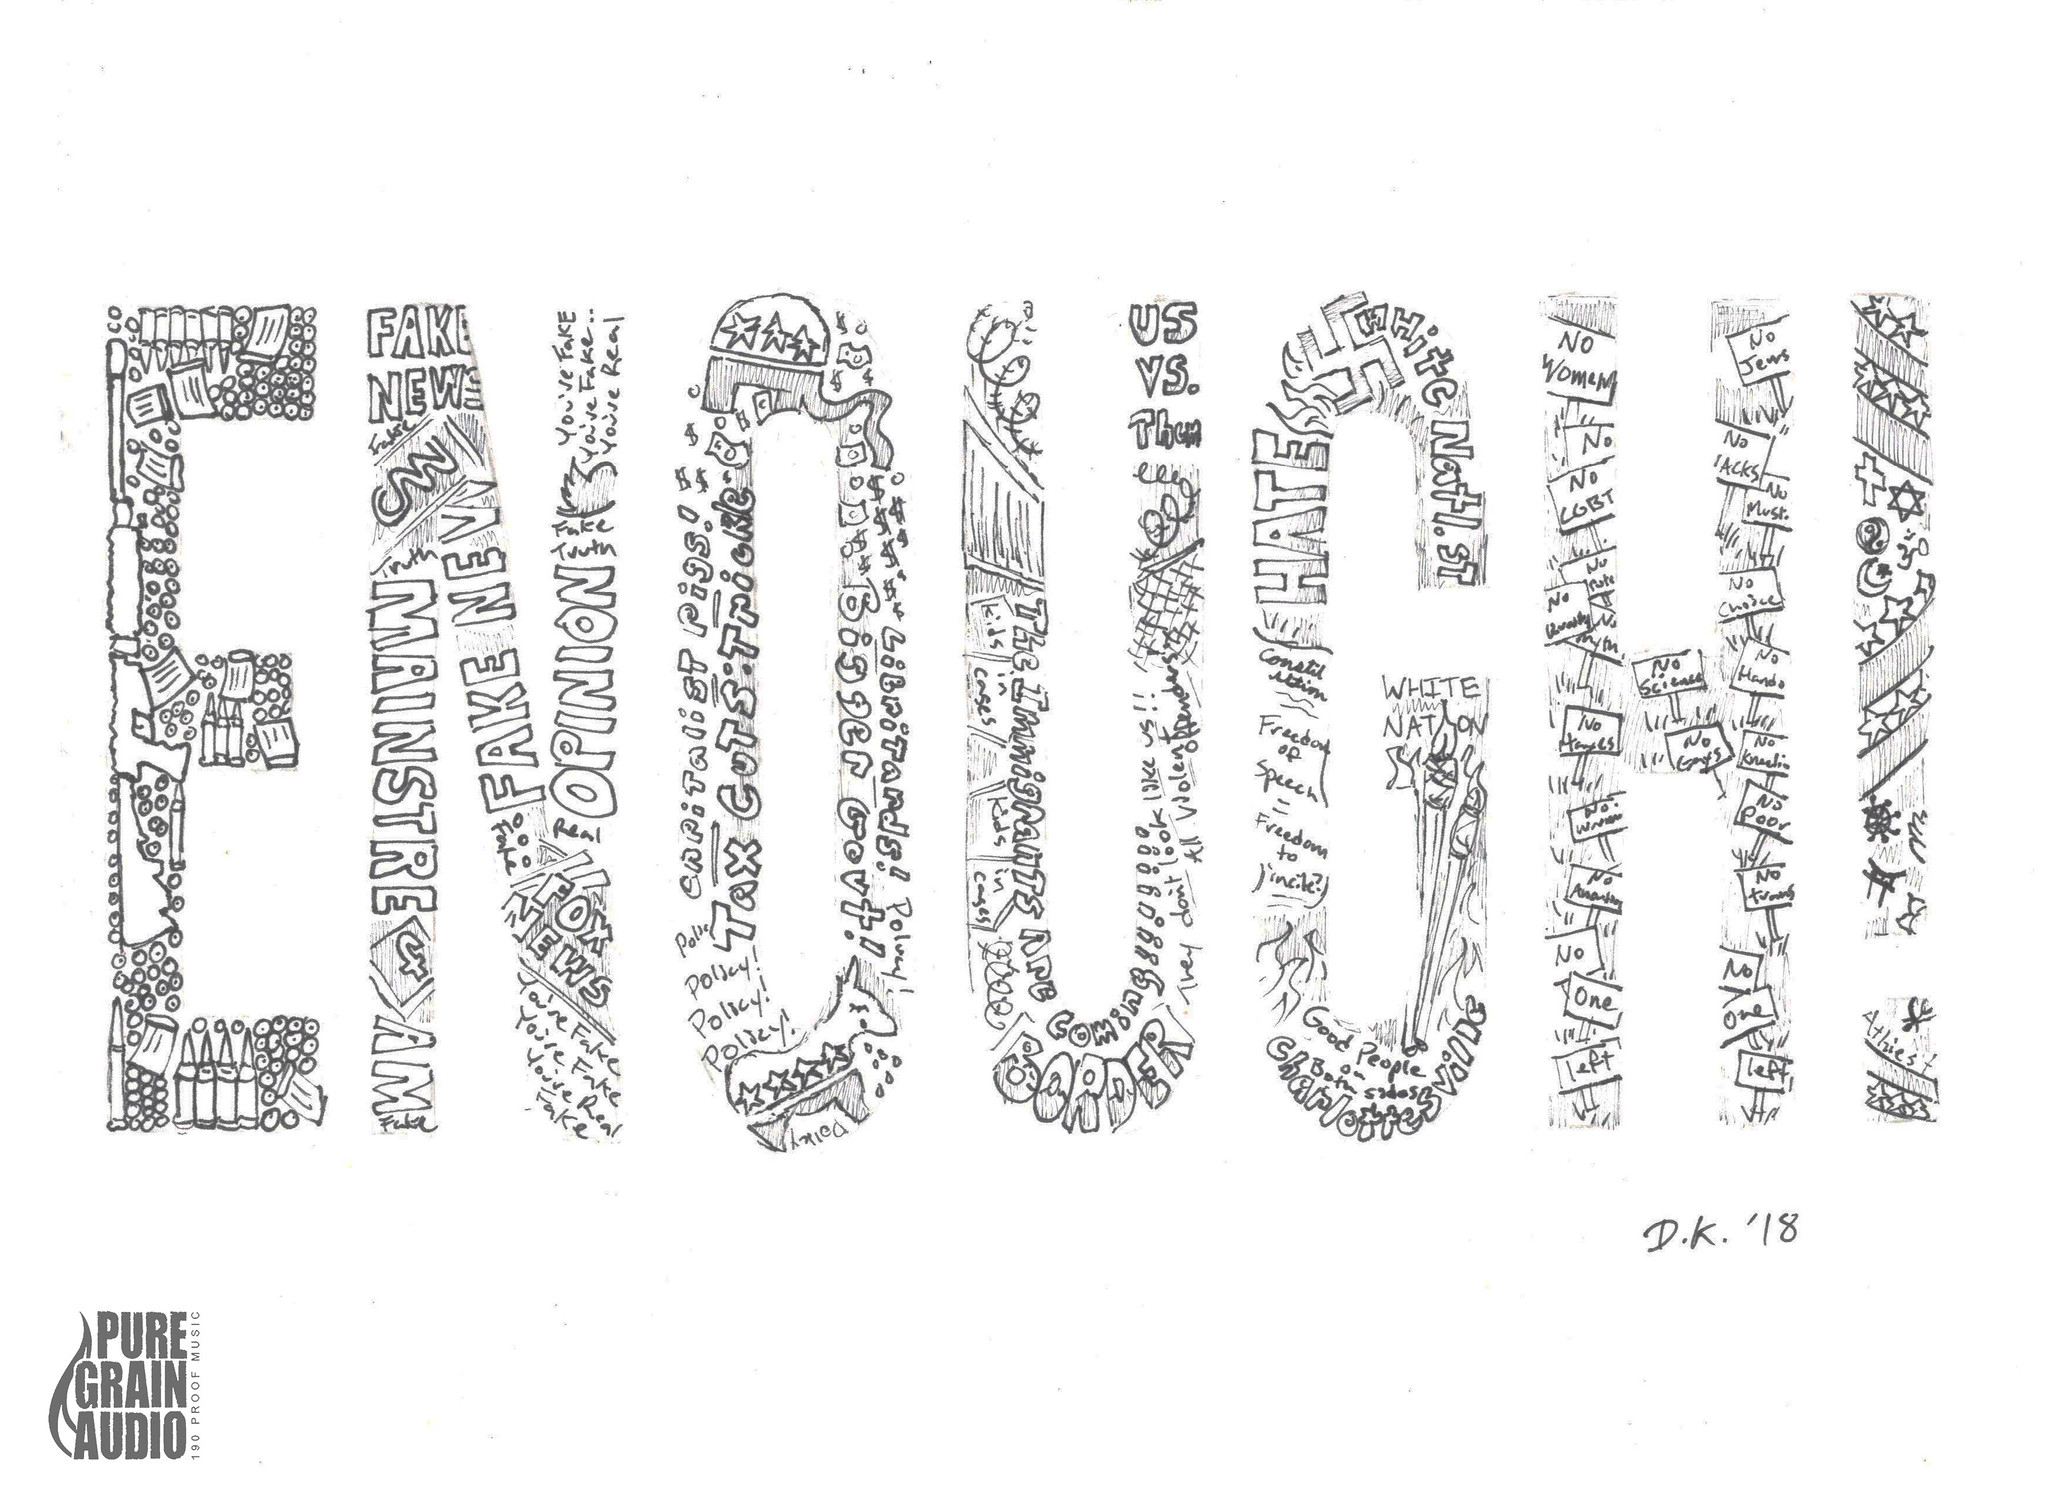 pensive_14_enough_featuring_hatred_and_violence